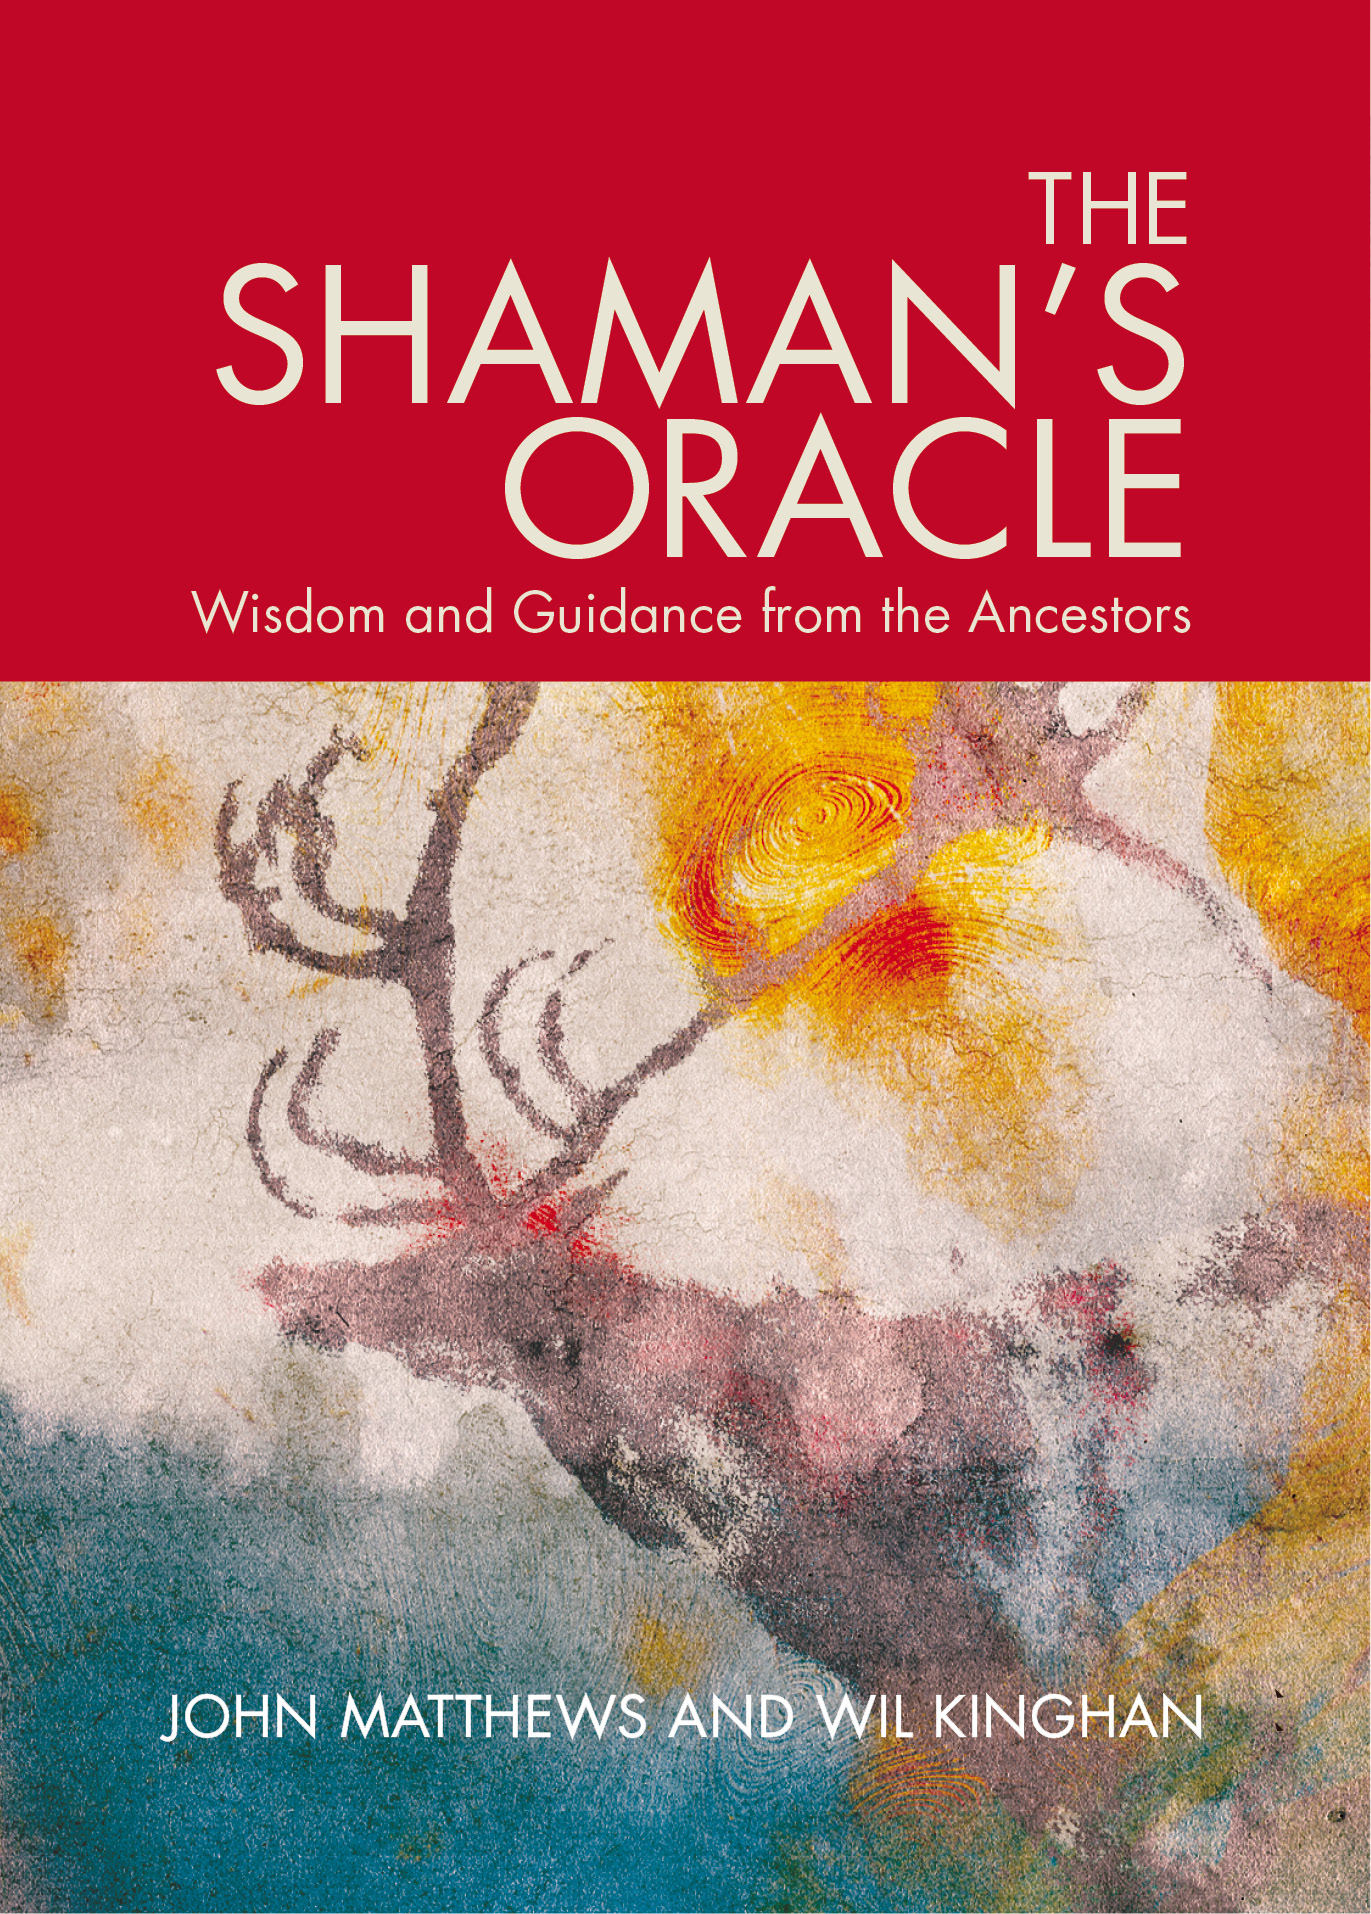 Schamans Oracle 9781780285238